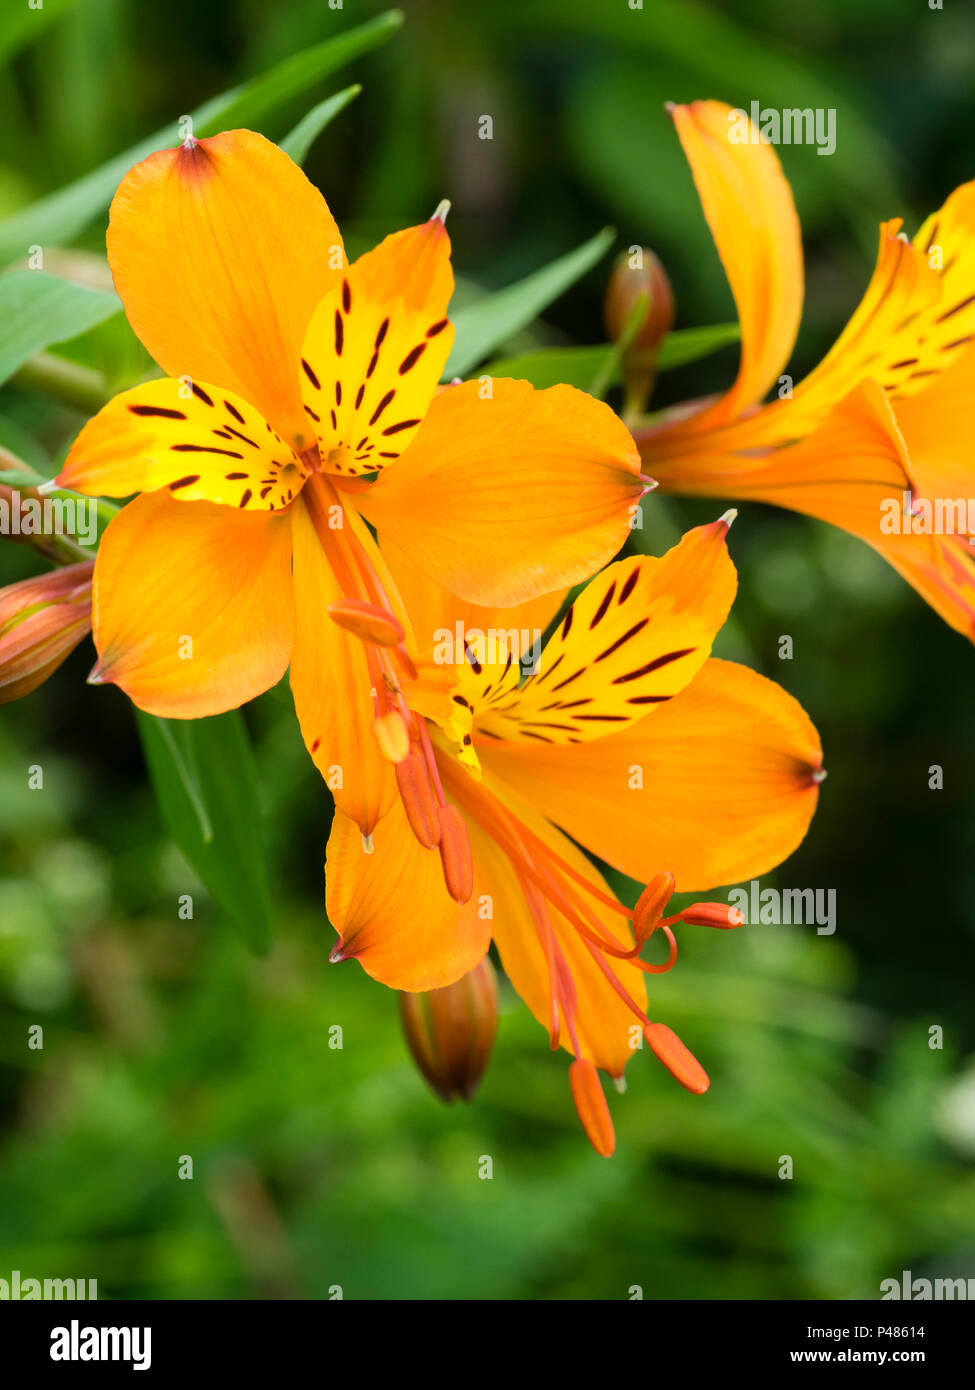 Orange flowered form of the Peruvian lily, Alstroemeria aurea (A.aurantiaca), blooming in Early summer. Stock Photo